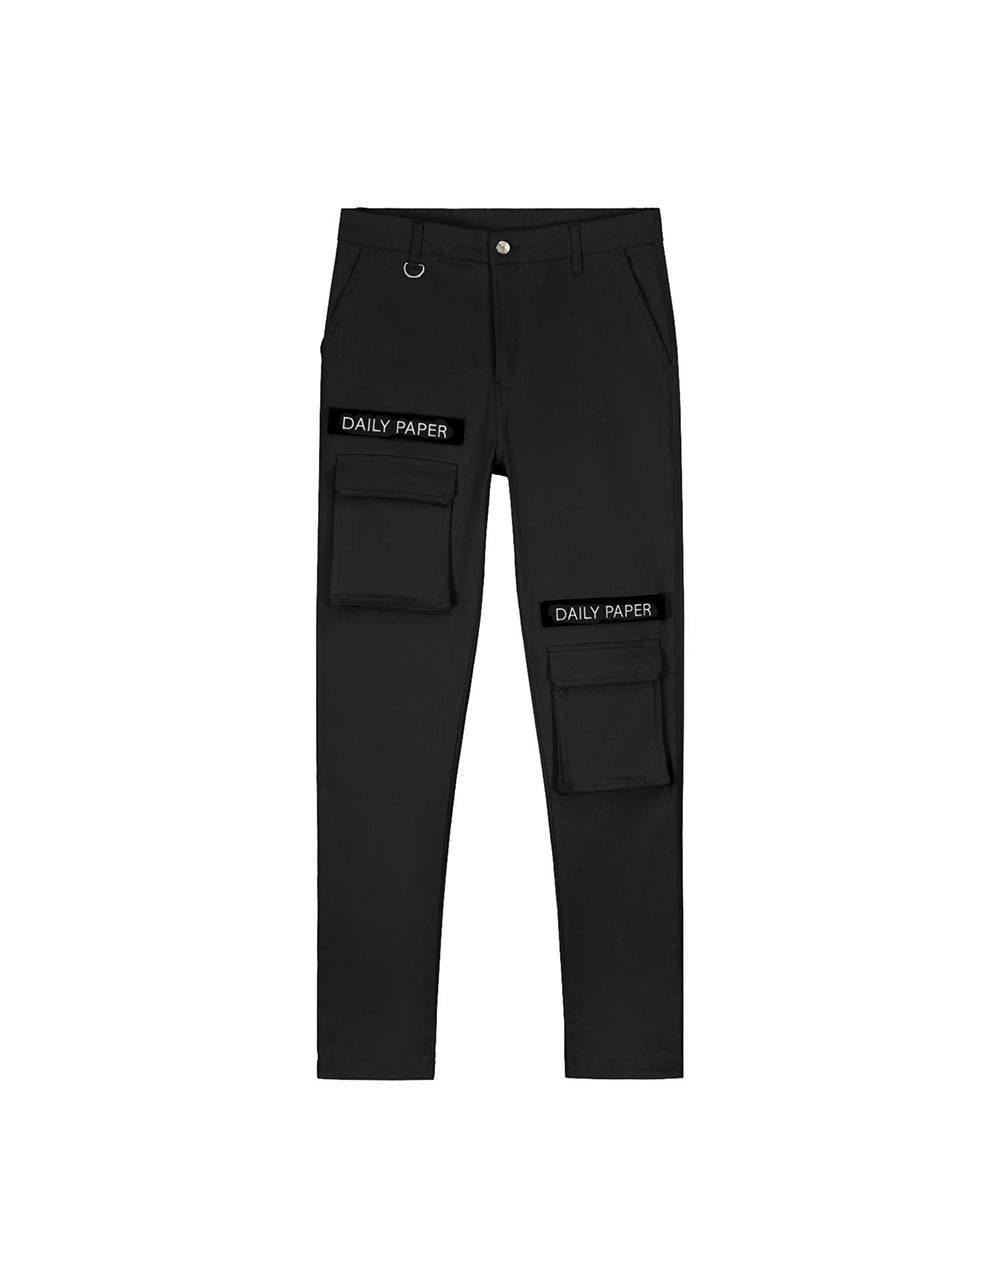 Daily Paper cargo pants - black DAILY PAPER Pant 109,00 €